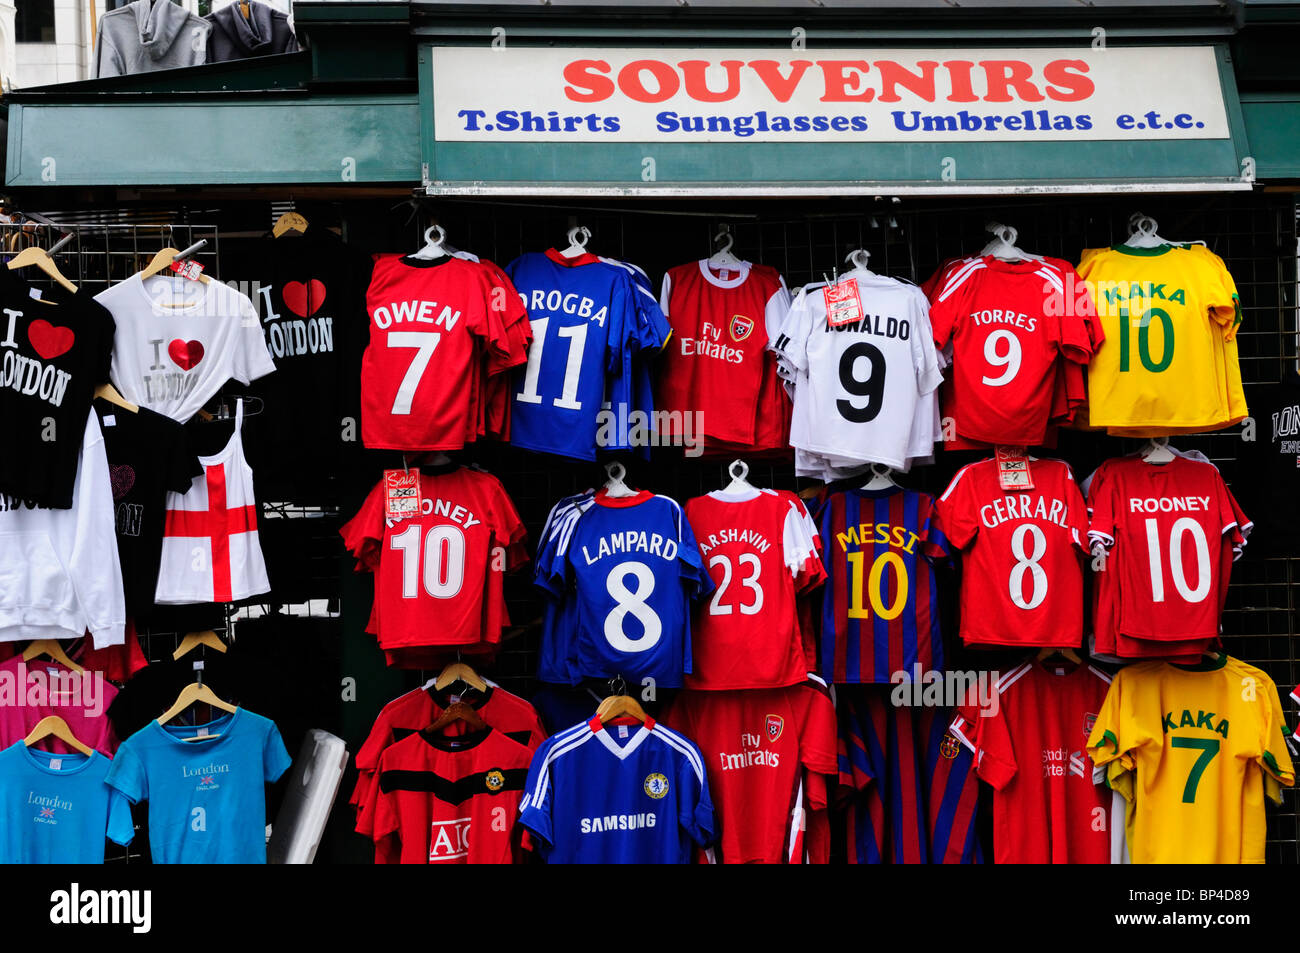 Soccer Shop Stock Photos   Soccer Shop Stock Images - Alamy b39072c79dd5